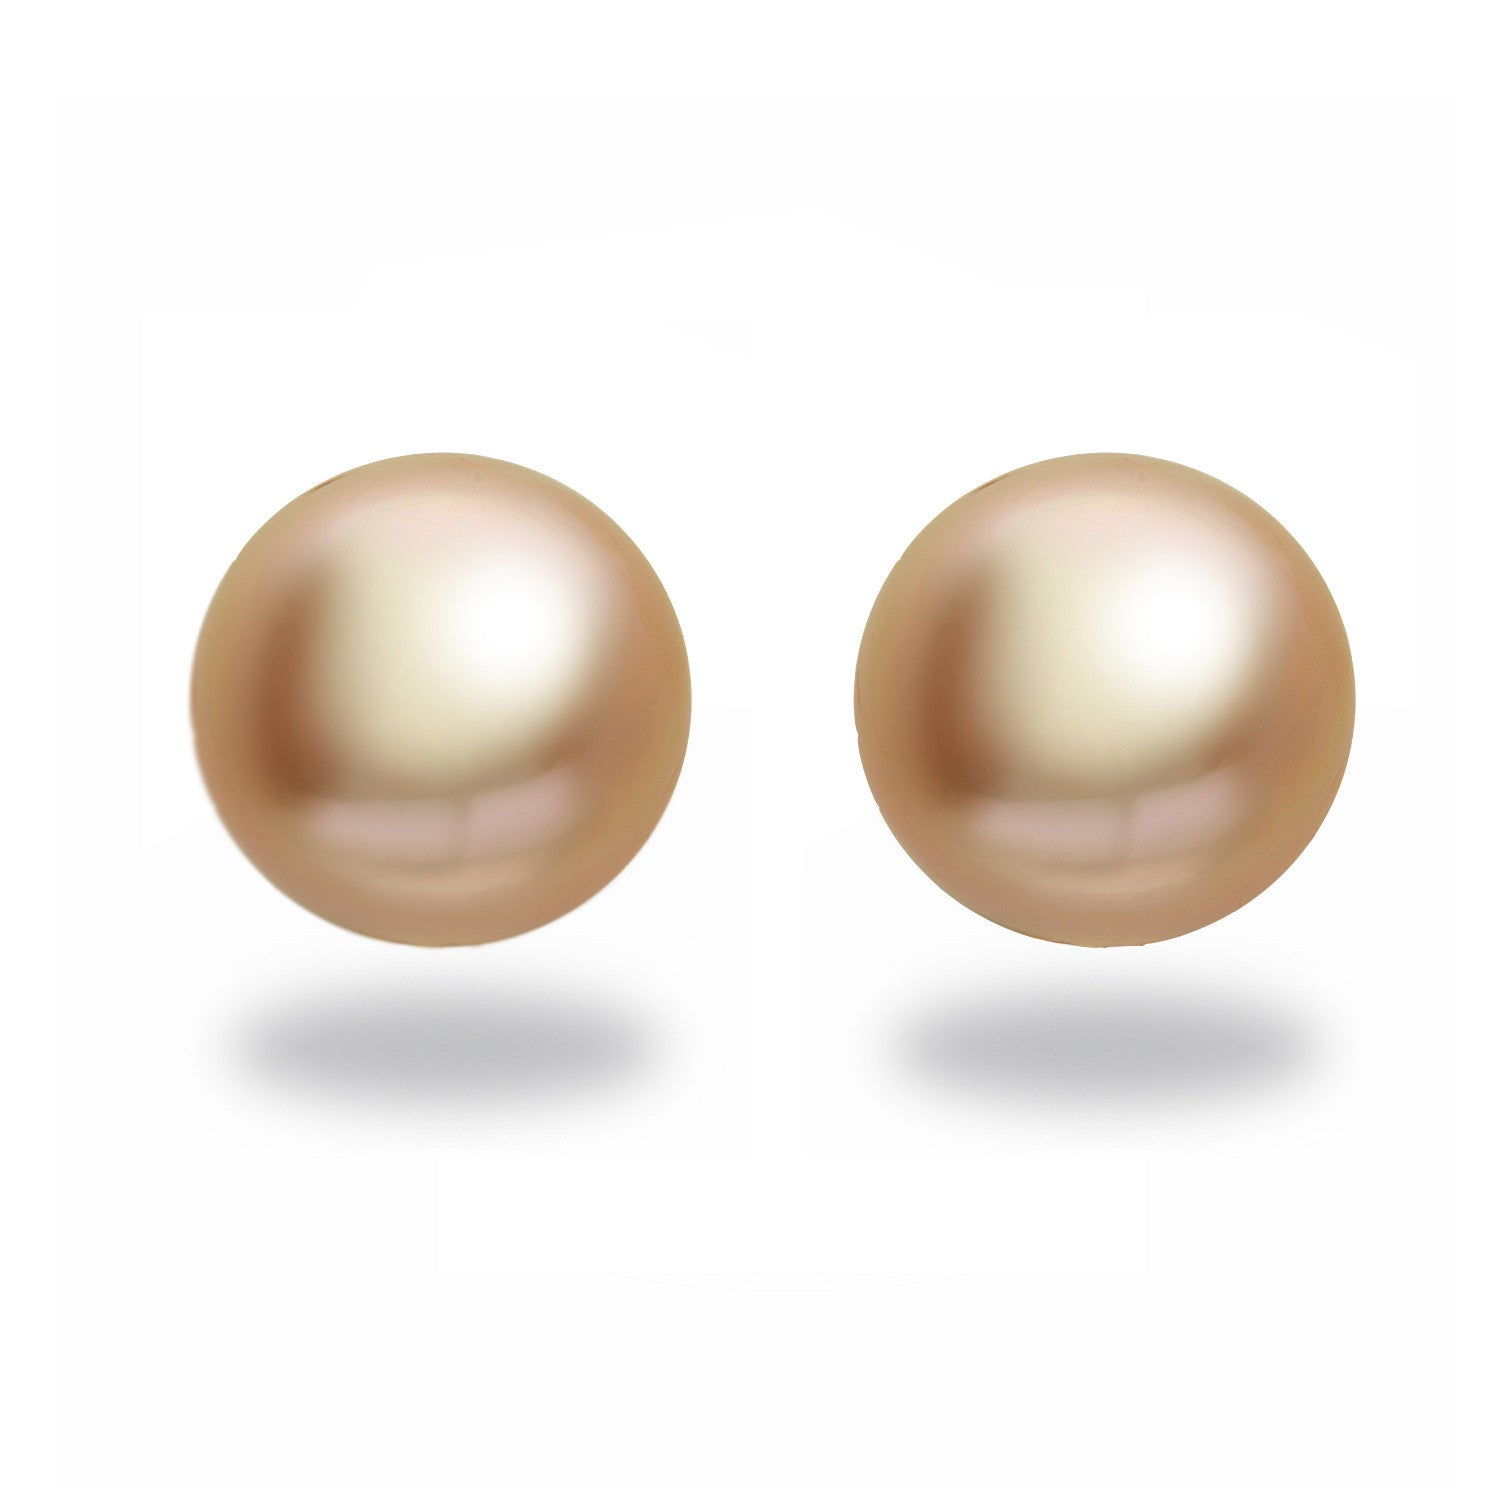 mitzuko white earrings pearl stud brandalley